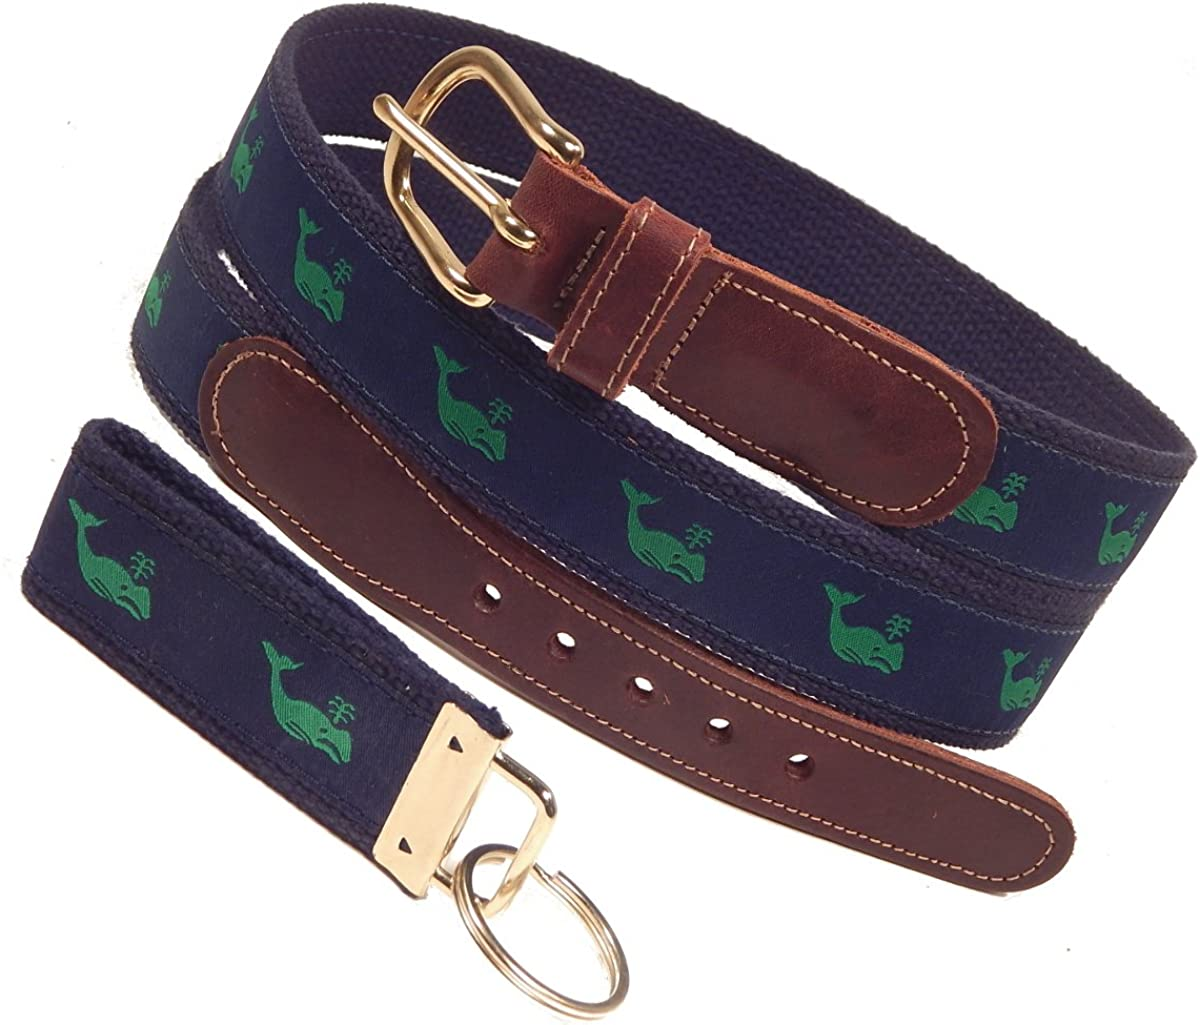 Preston Leather Classic Ribbon Belt, Green Whale, Navy, Navy Web, Sizes 30 to 50, Free Matching Key Ring